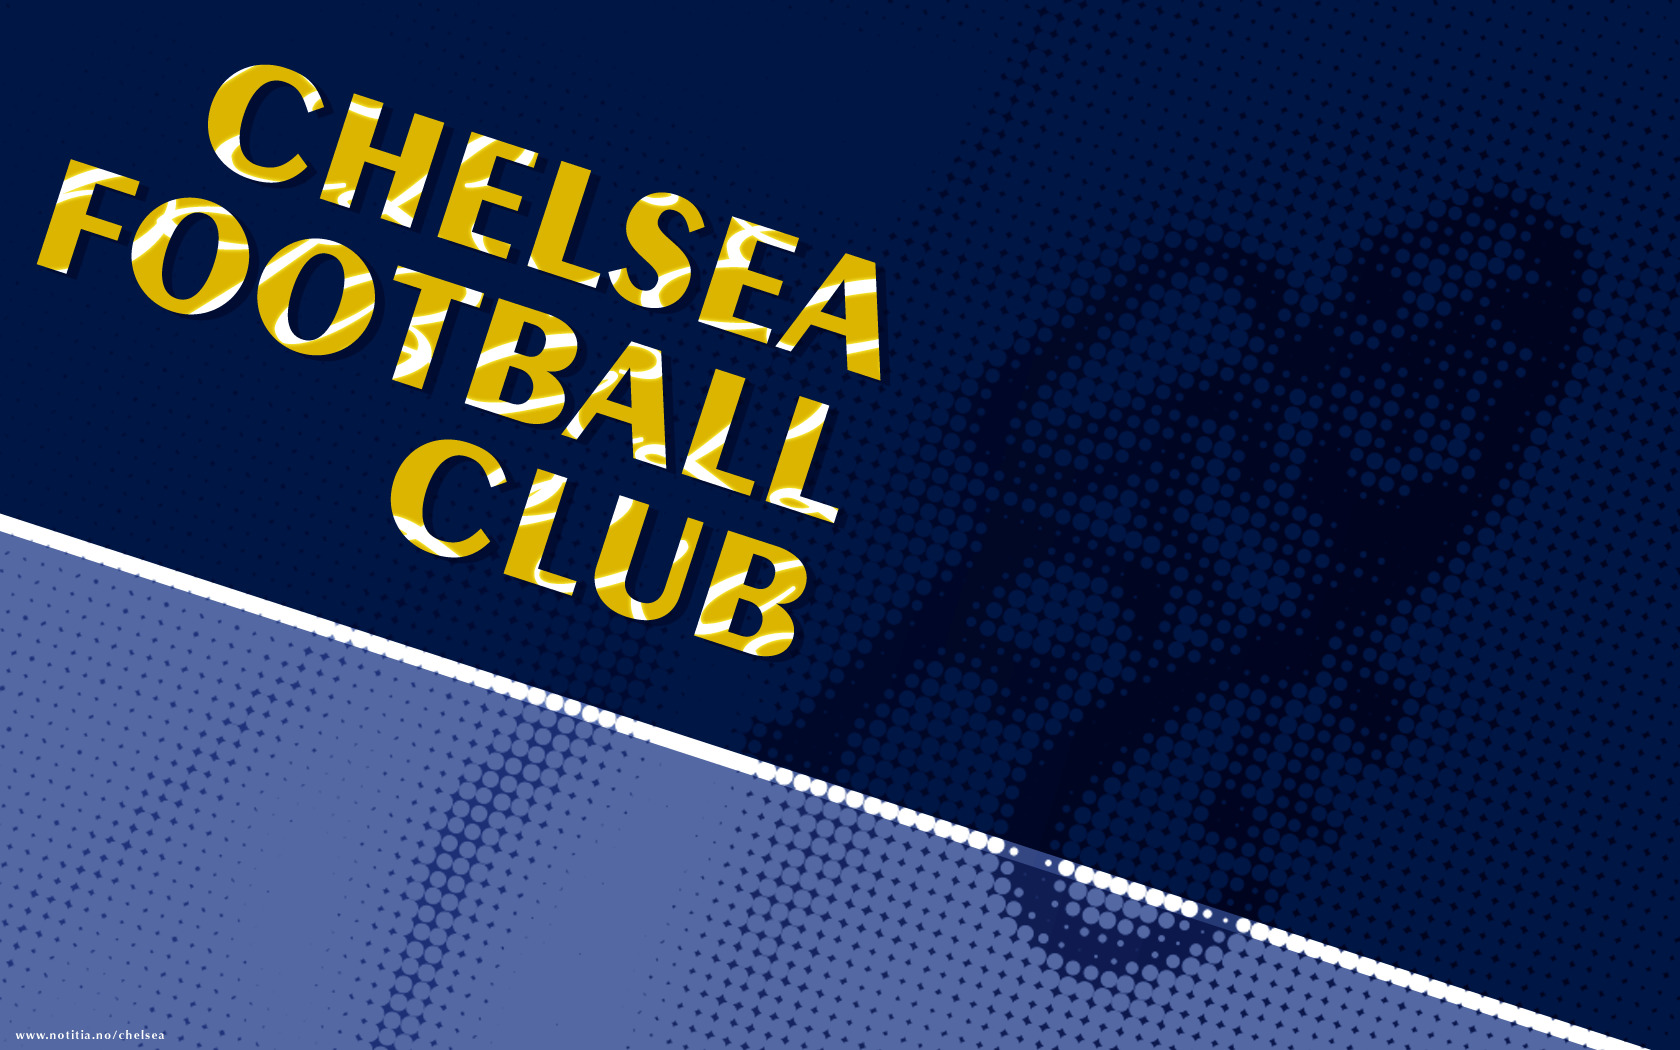 chelsea FC HD Wallpaper